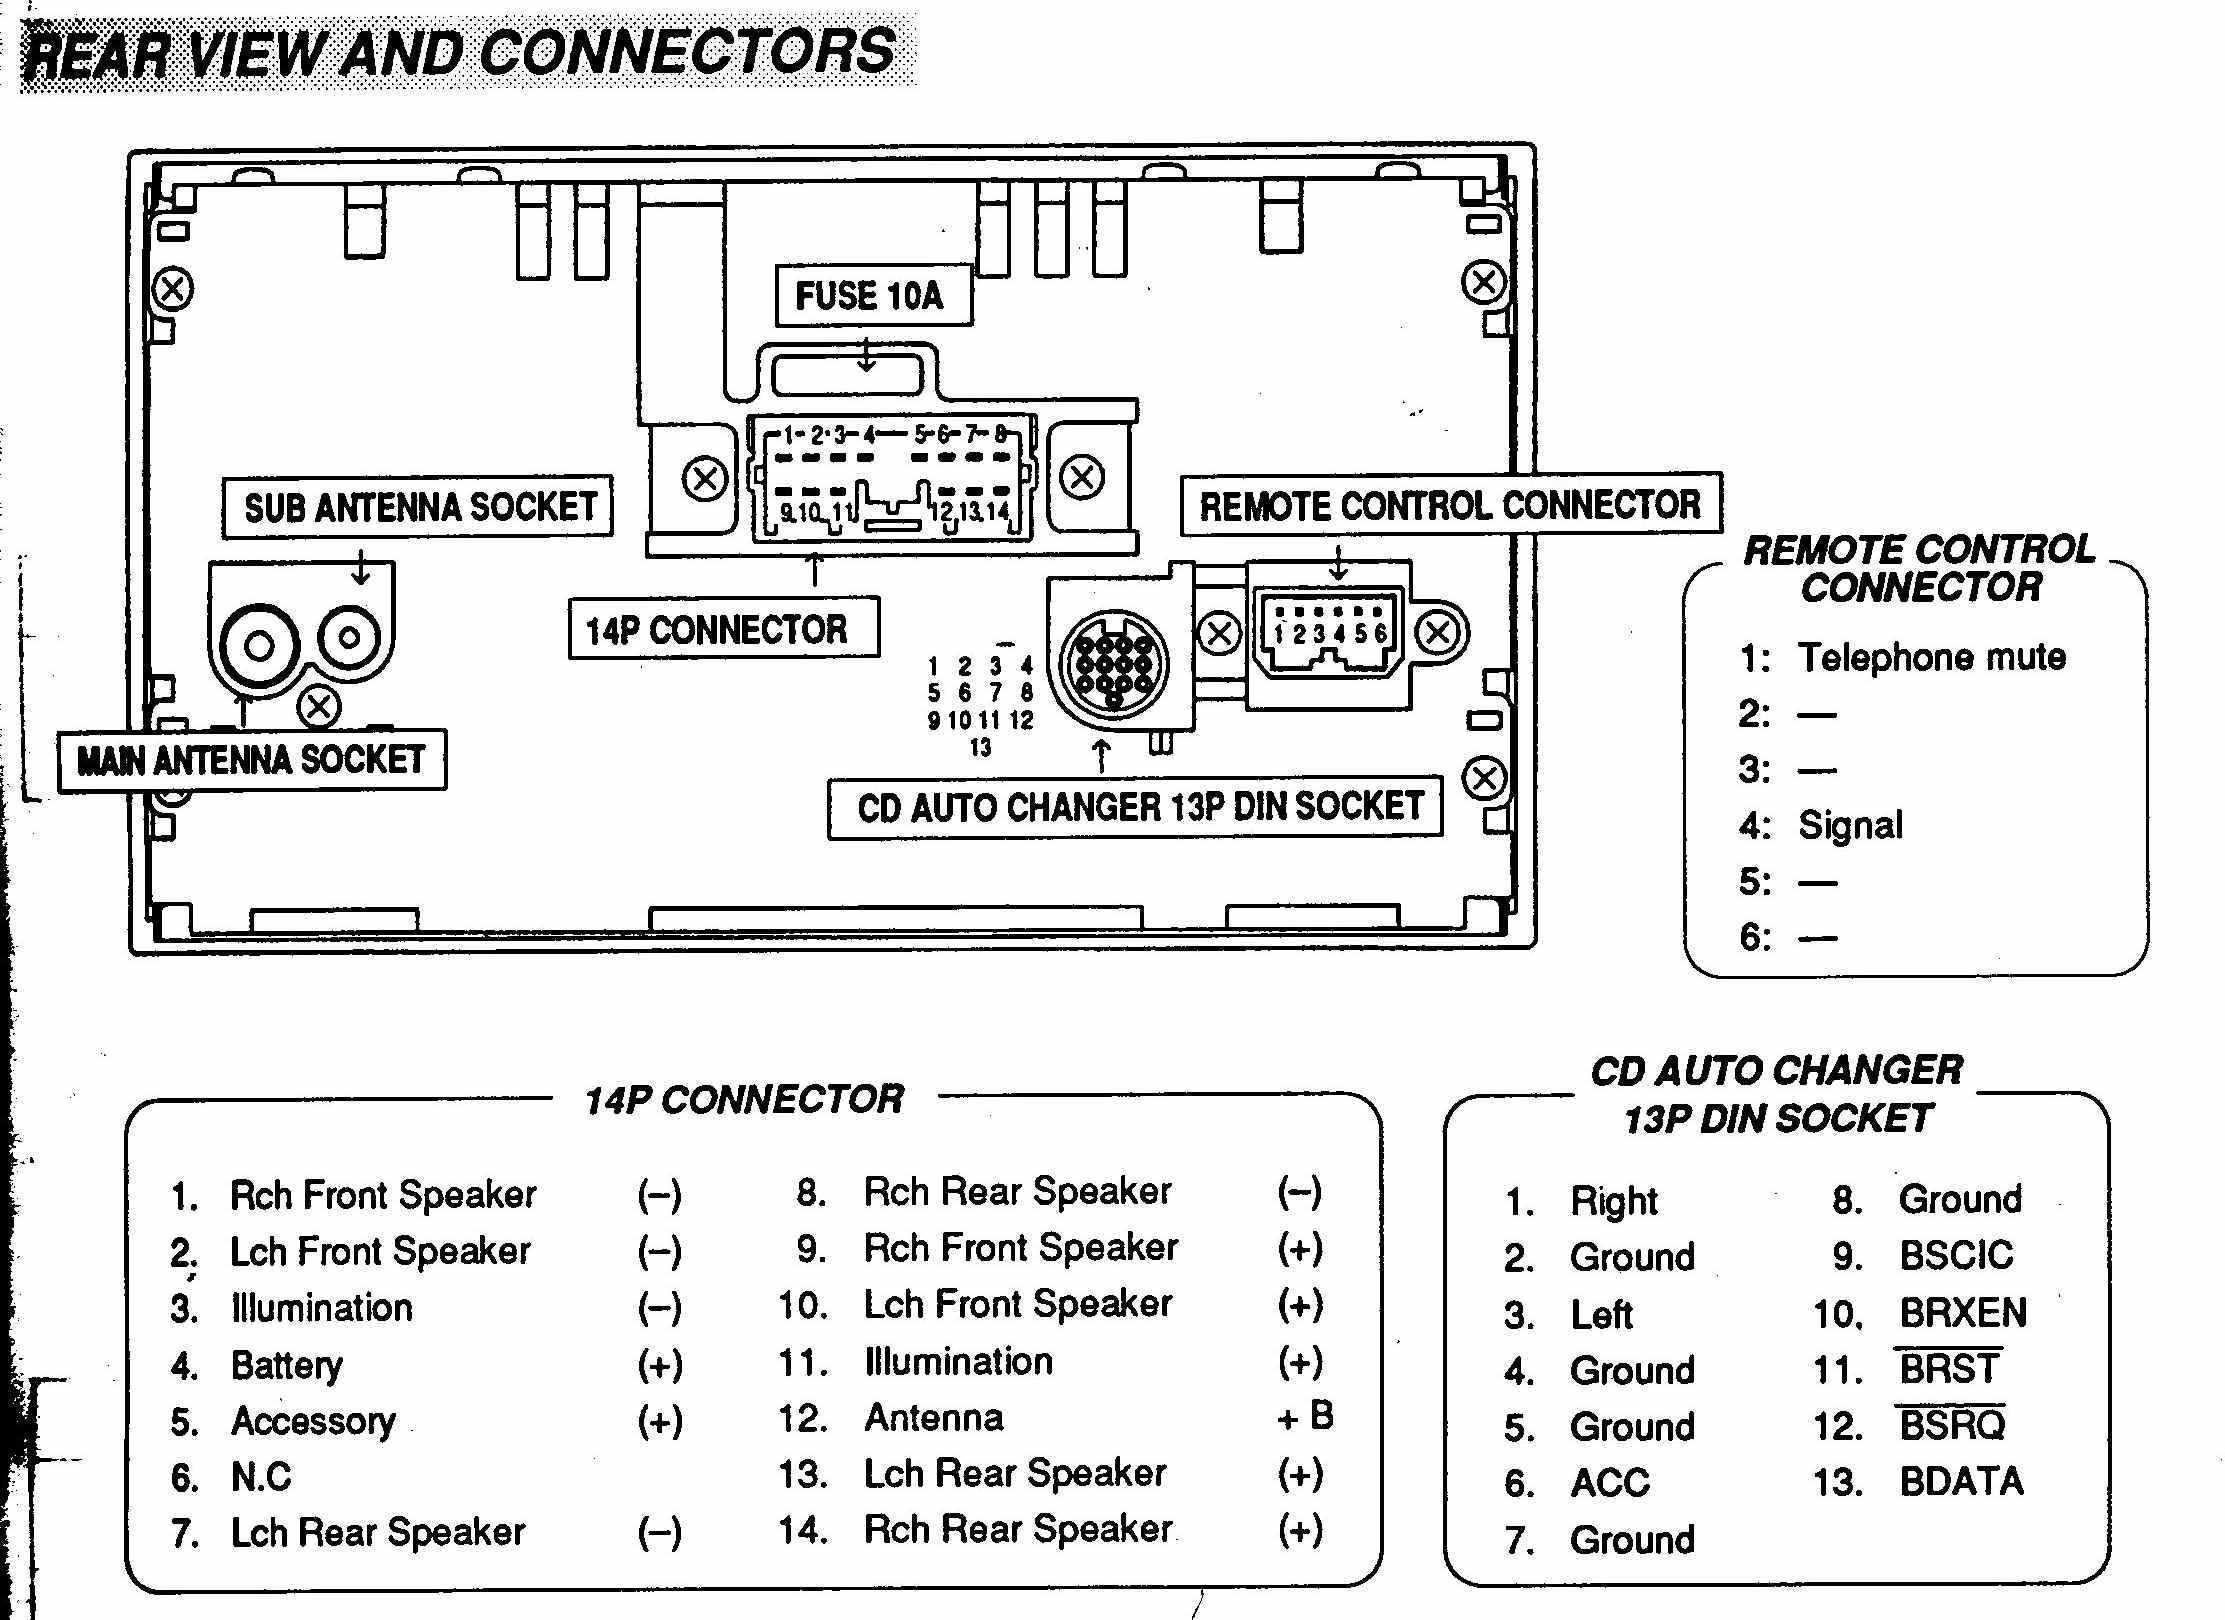 2000 Mitsubishi Eclipse Engine Diagram Wiring Diagram Moreover 2001 Mitsubishi Eclipse Radio Wiring Diagram Of 2000 Mitsubishi Eclipse Engine Diagram Iwak Kutok Saturn Sl1 Engine Diagram Wiring Info •